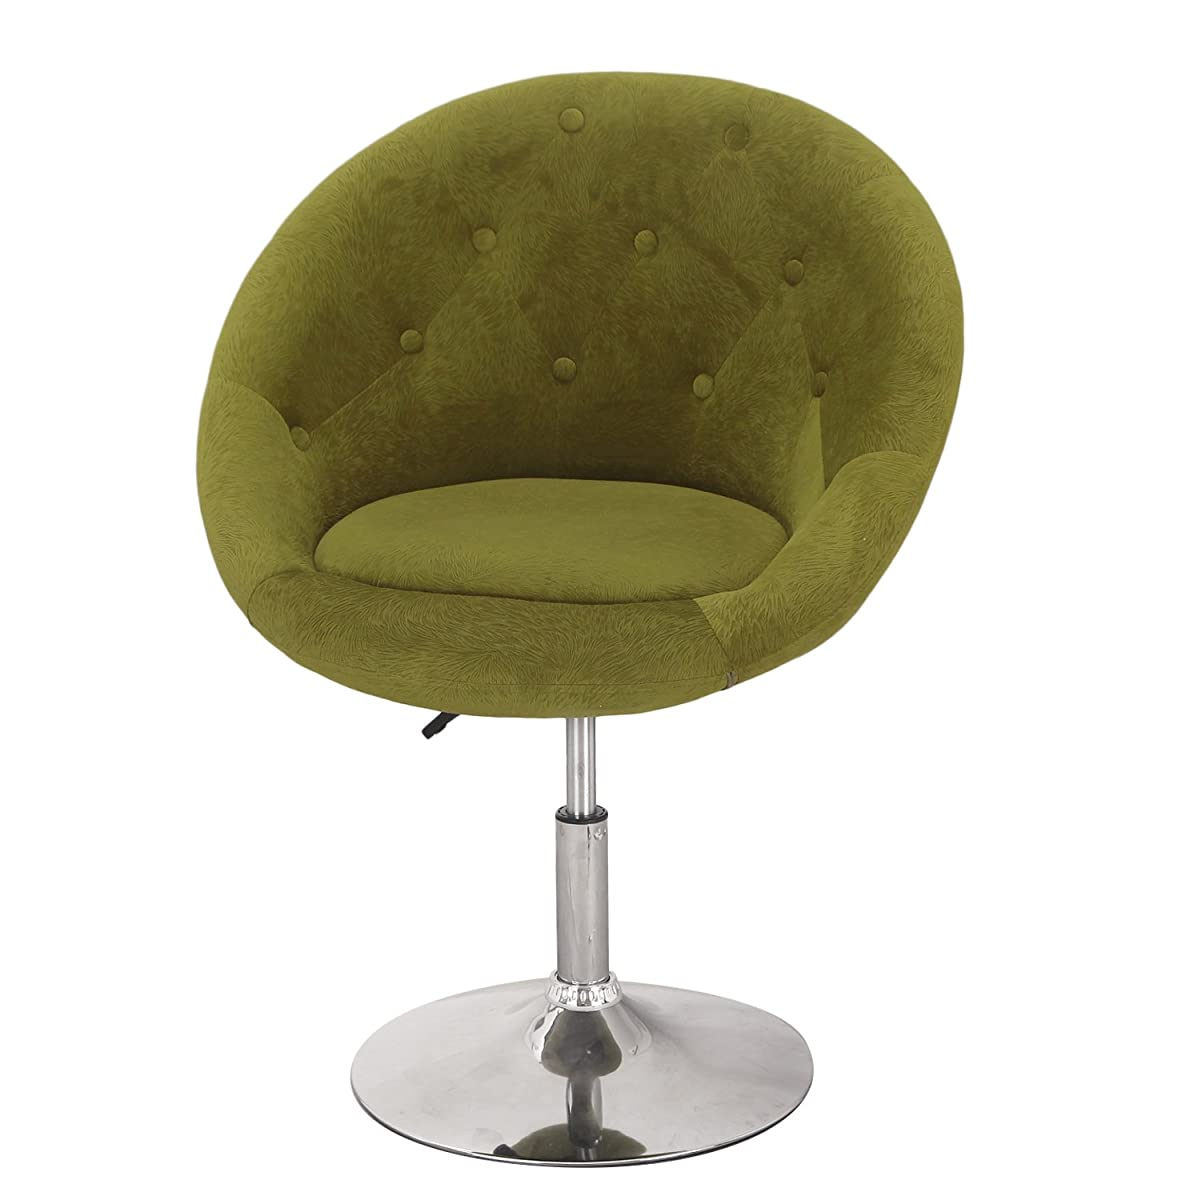 Asense Round-Back Swivel Chair, Cushioned Leatherette Adjustable Barstool Chair with Lift Chair Green